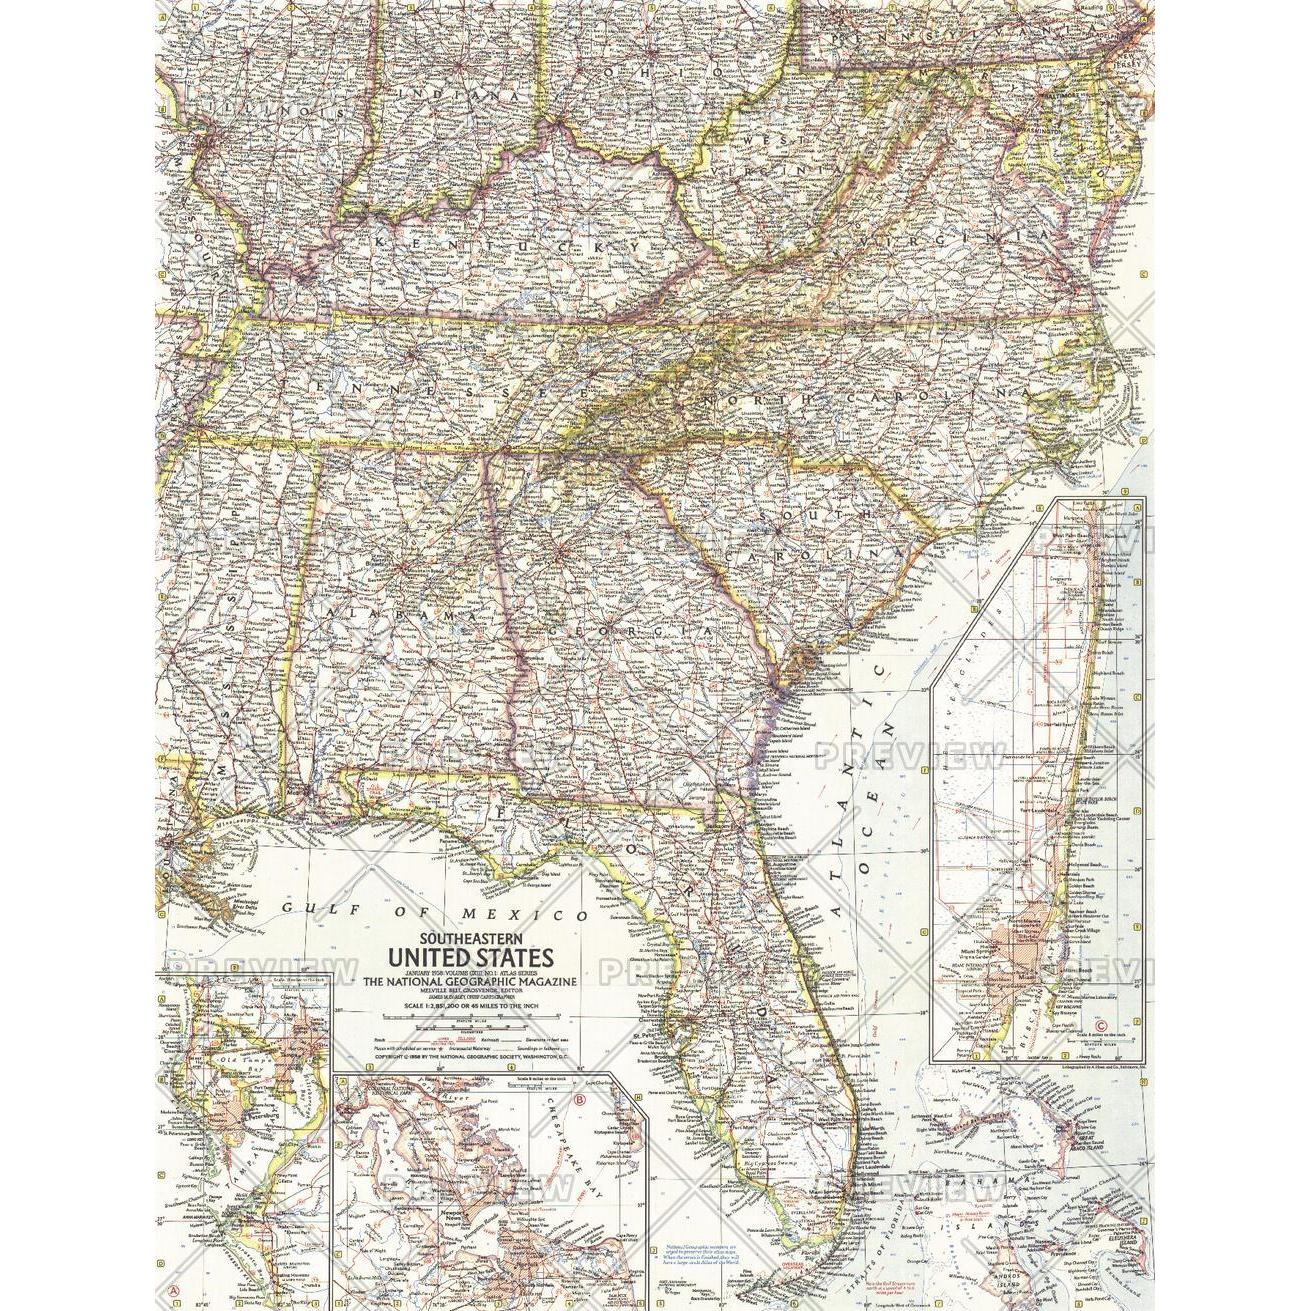 Southeastern United States - Published 1958 - The Map Shop